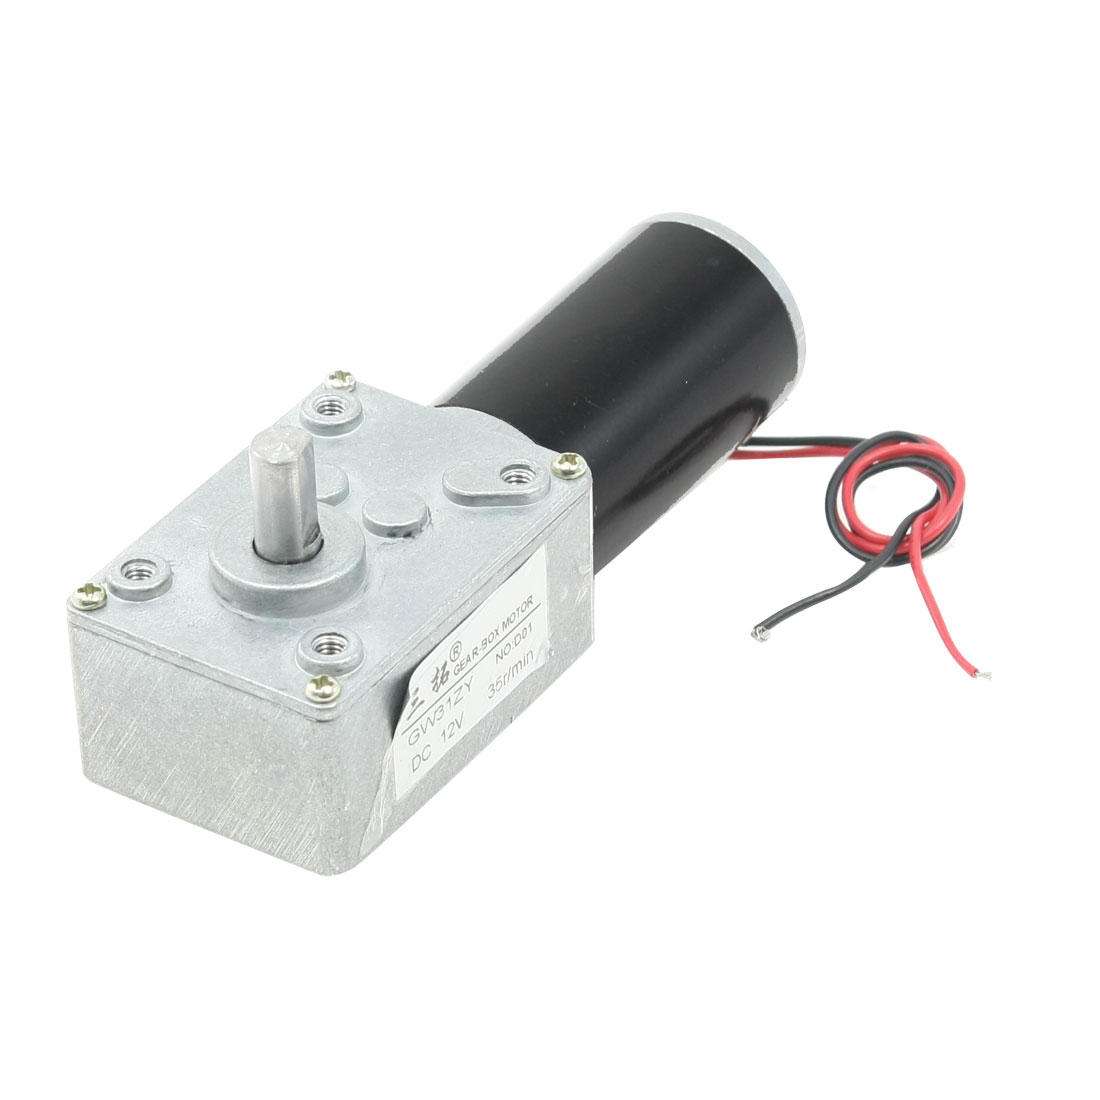 35RPM-DC-12V-8mm-Dia-Shaft-2-Wires-Gearbox-Electric-Geared-Motor